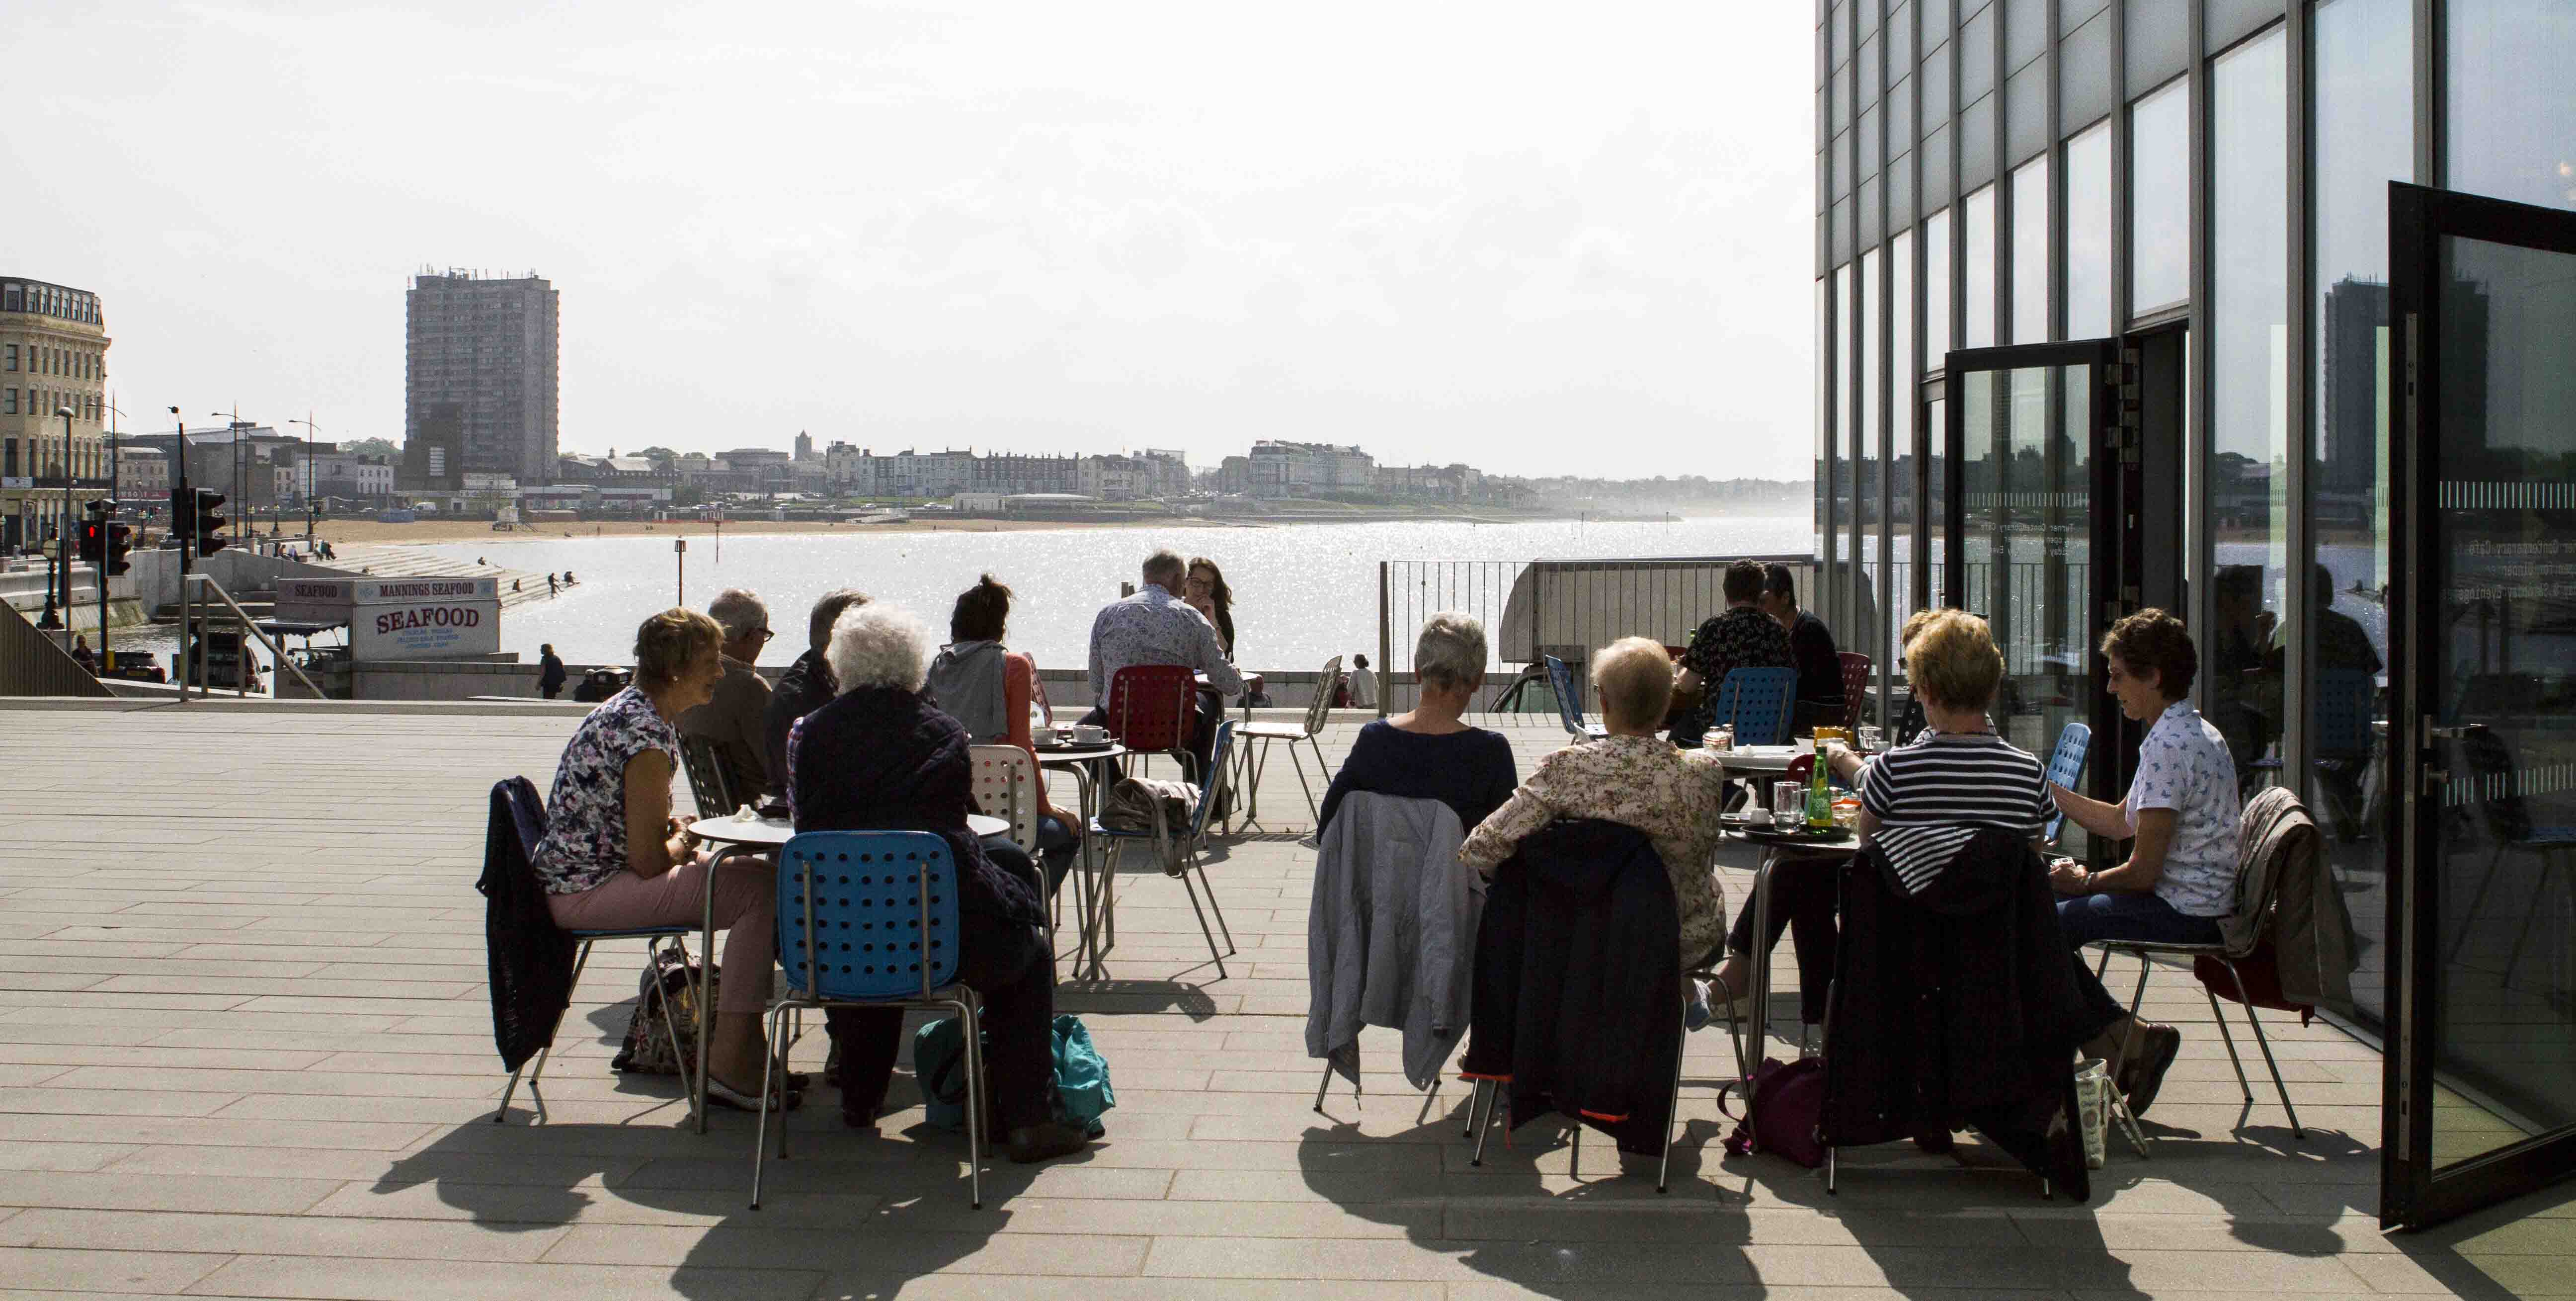 The Turner Contemporary gallery Margate Kent